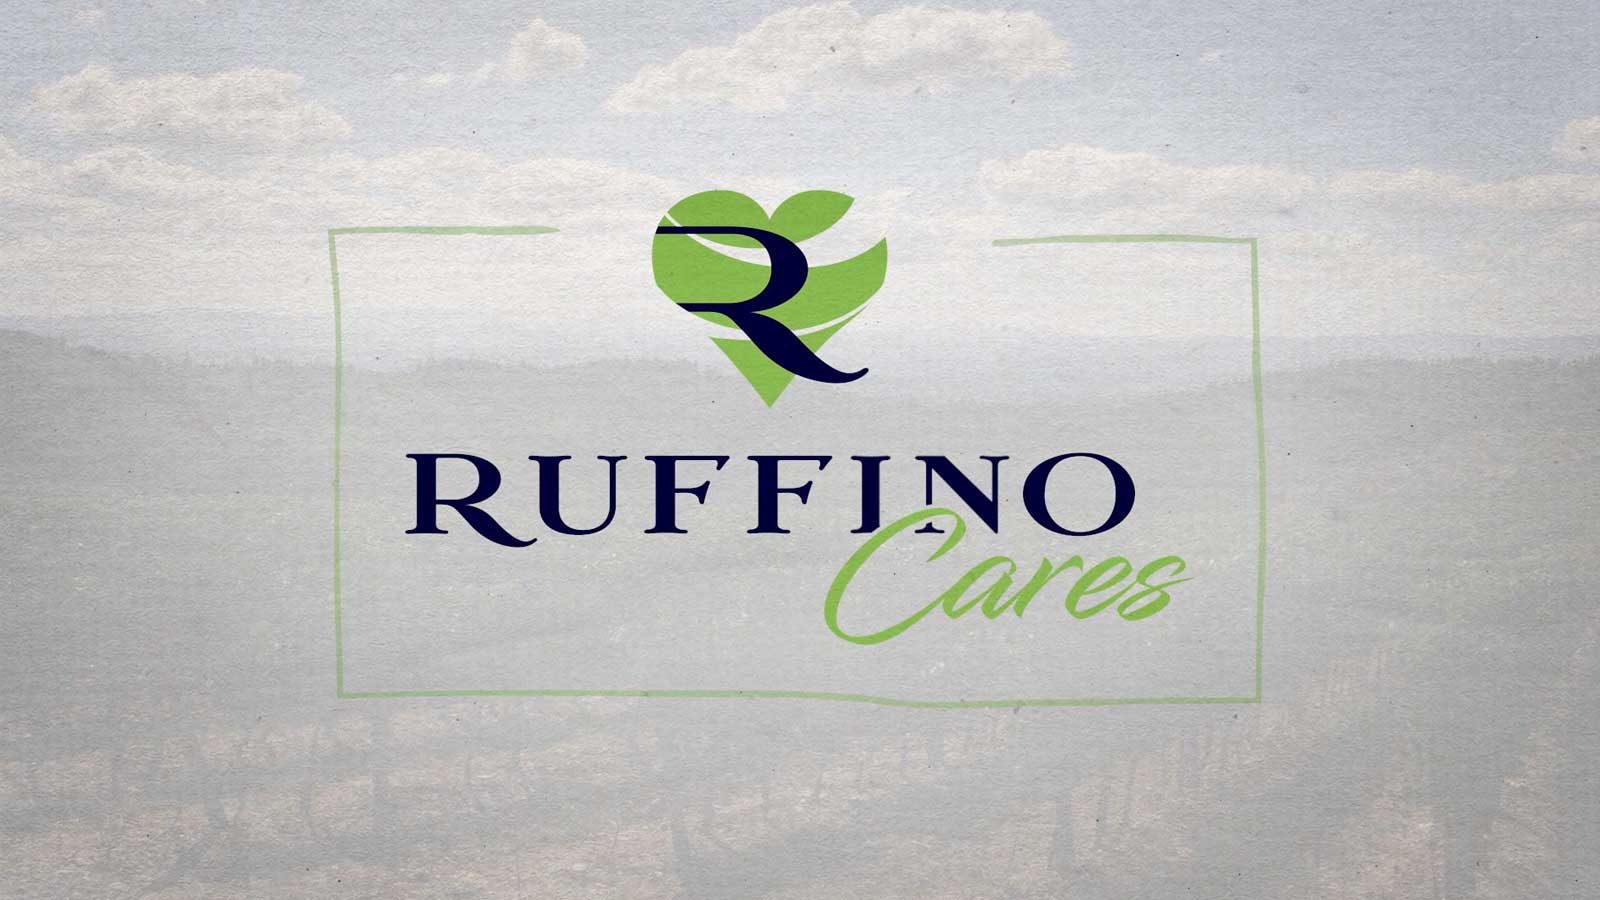 Ruffino cares video